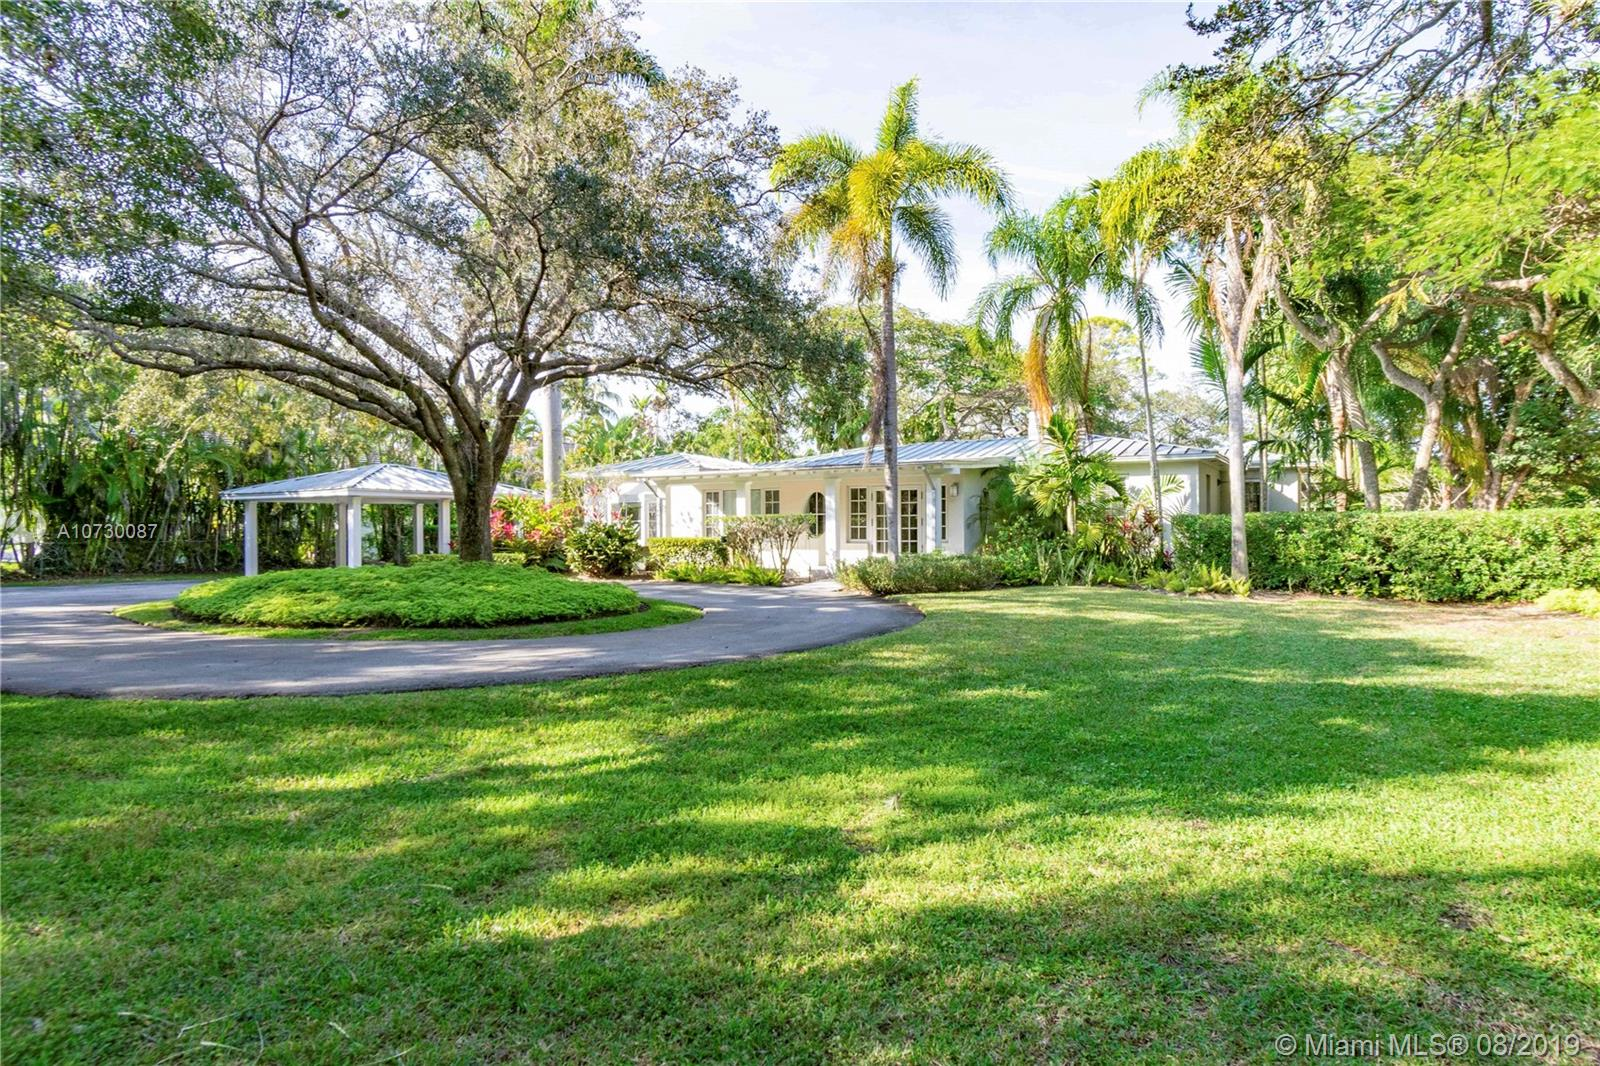 6487 SW 92nd St, Kendall, Florida